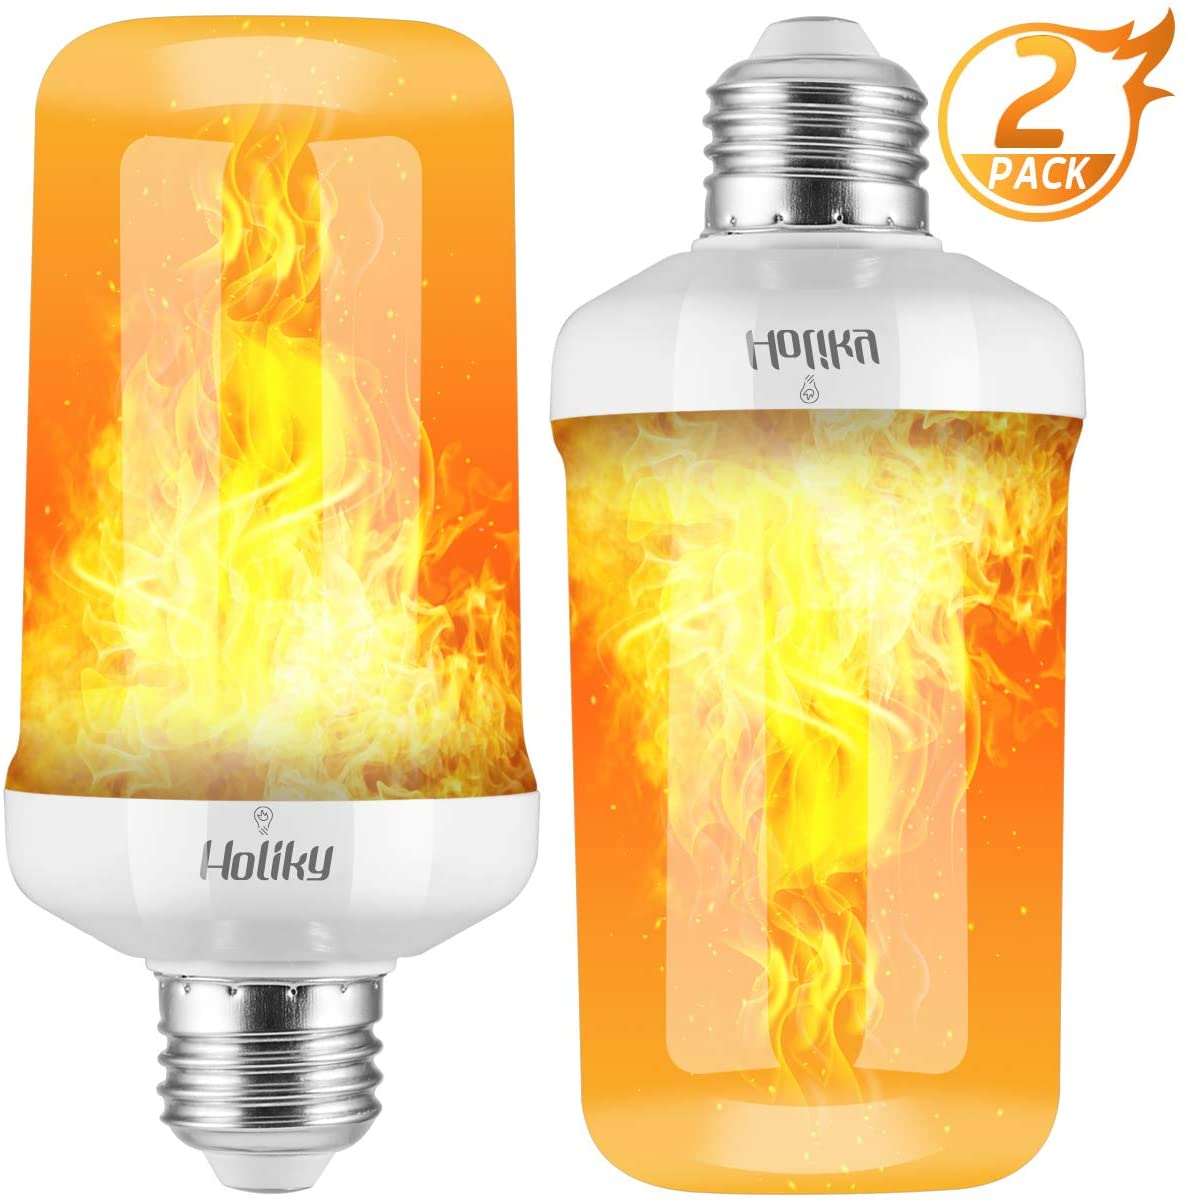 Led Flame Lights Bulbs, Flame Effect Light Bulbs for Christmas Decorations, Updated 4 Modes Fire Flicker Flame Bulb with Upside Down Effect, Orange Christmas Lights Bulbs, 7W E26 Flame Light (White)